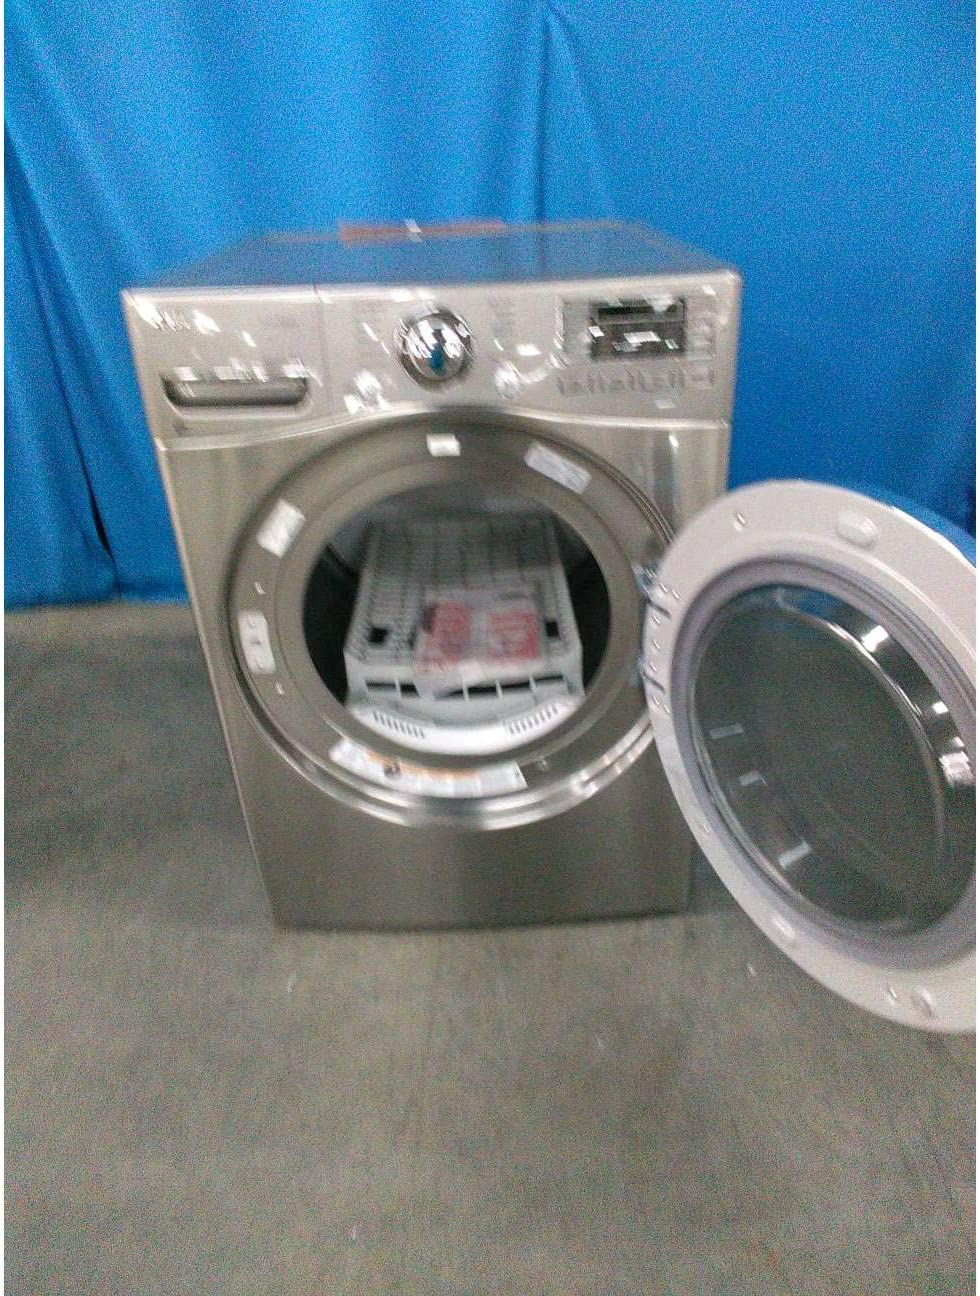 Graphite Steel Electric SteamDryer with NFC Tag On Ft LG DLEX3570V 7.4 Cu